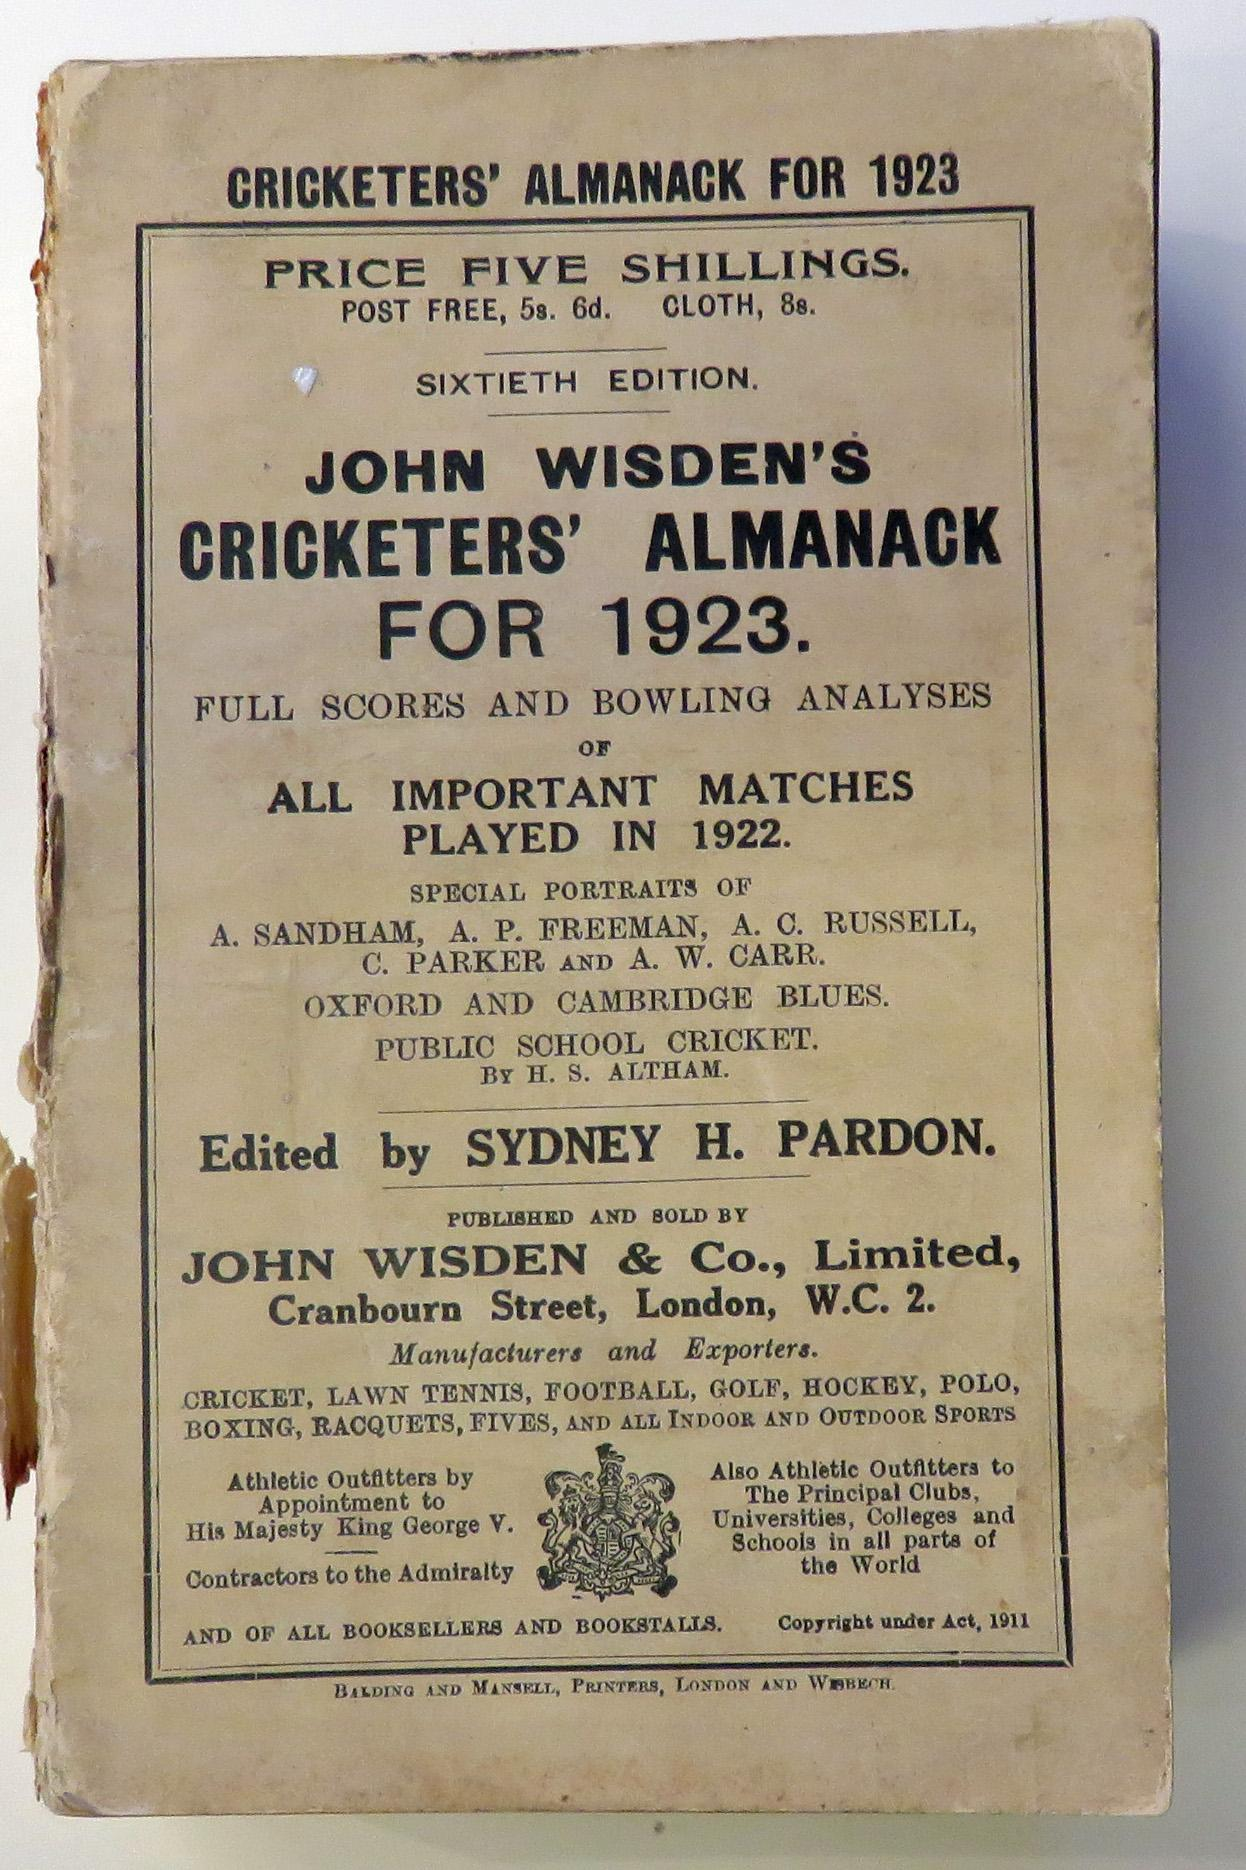 **John Wisden's Cricketers' Almanack For 1923